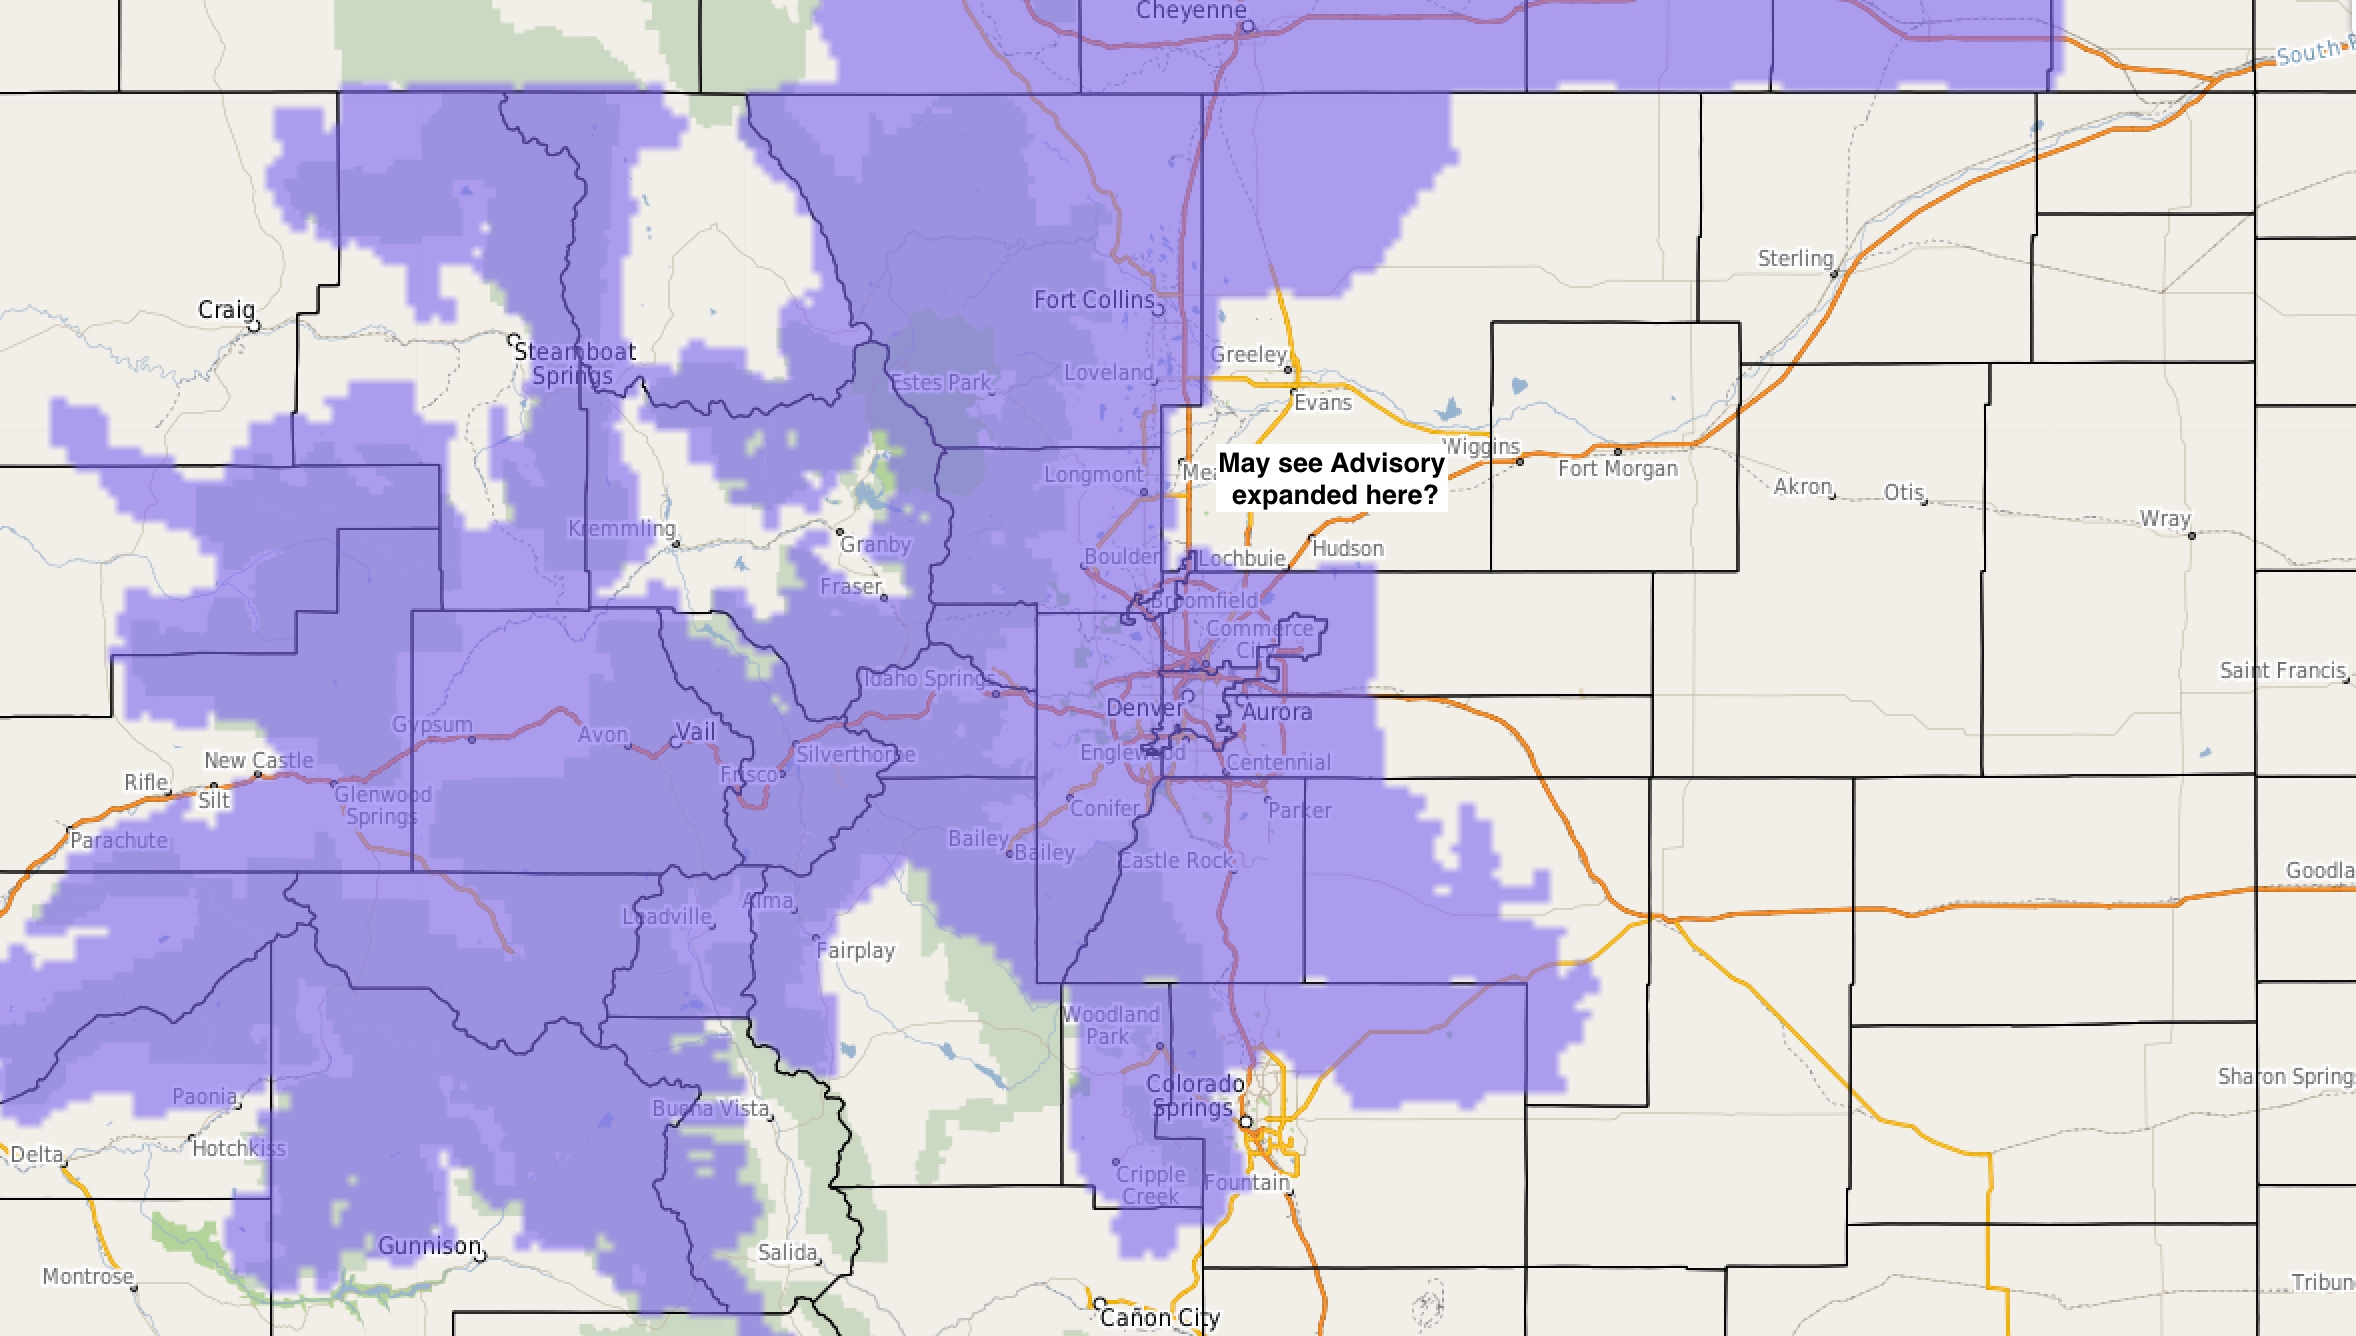 Winter Weather Advisory in purple in effect from 6pm Tuesday though noon Wednesday